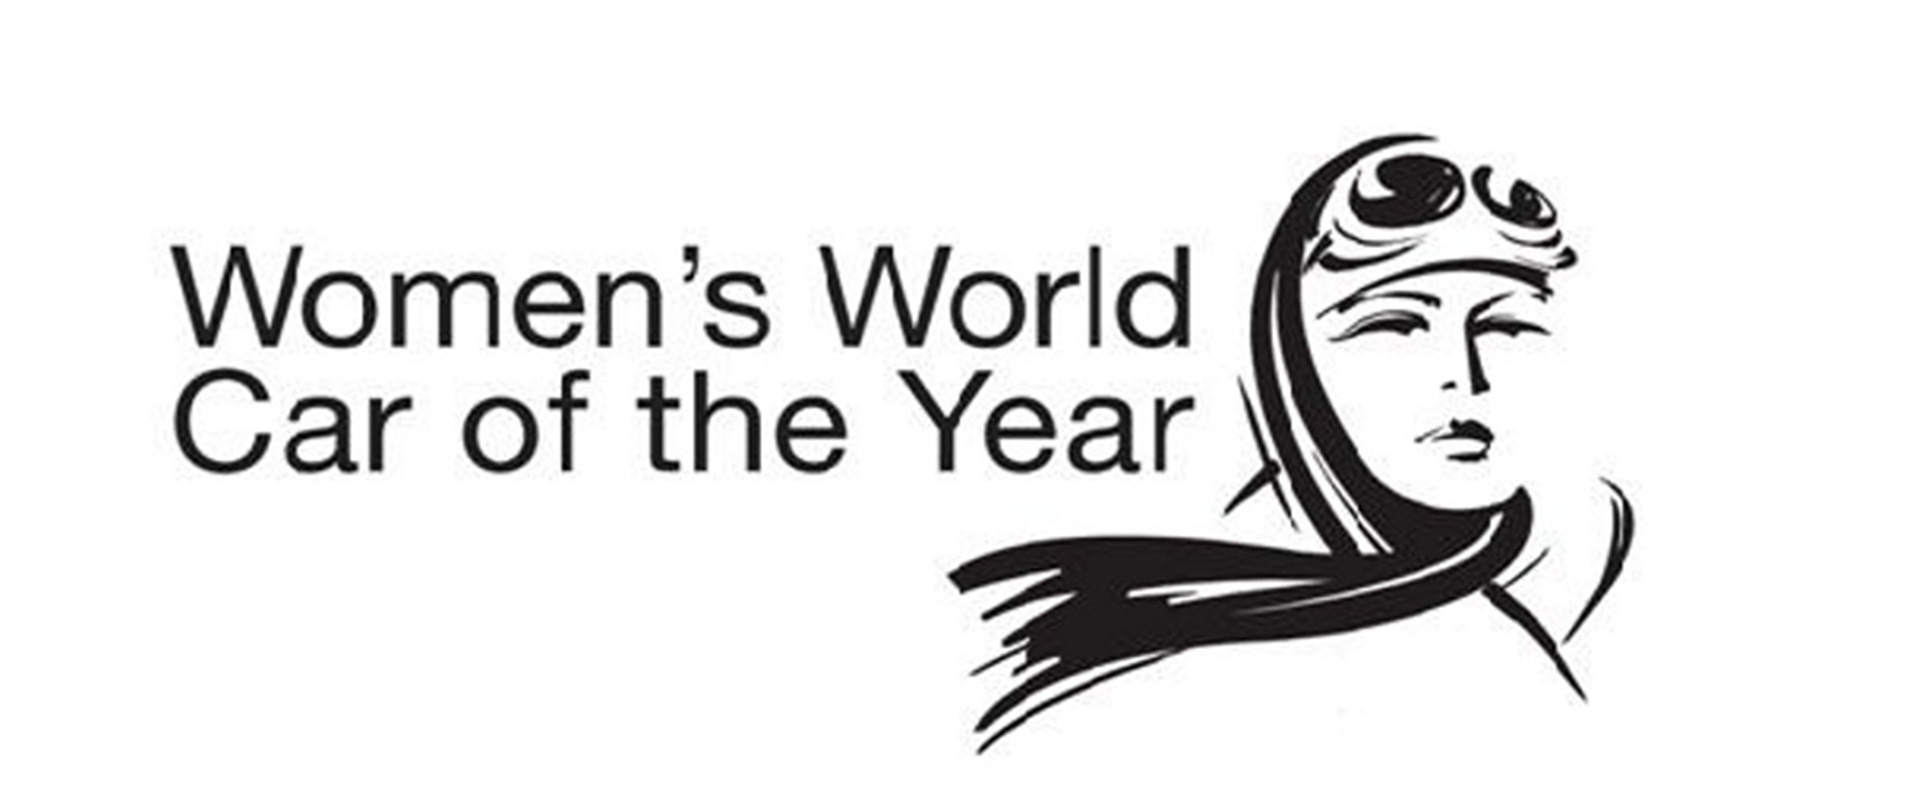 women car of the year 2012